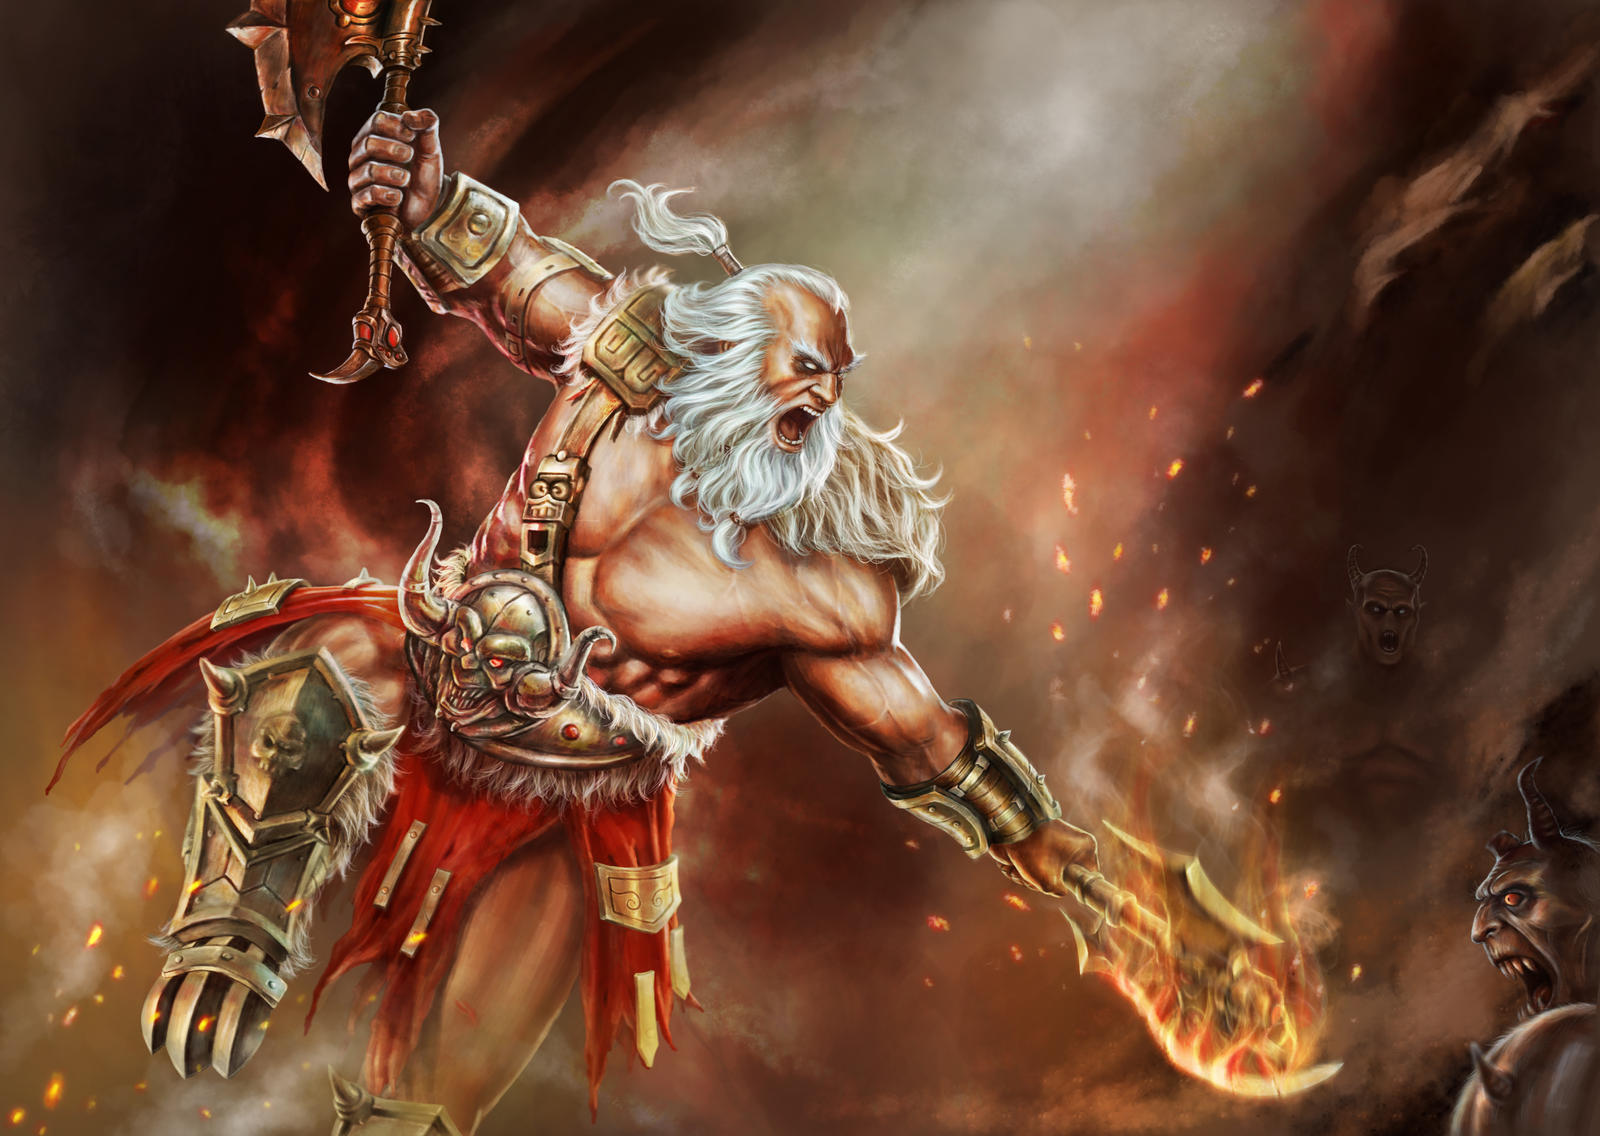 the_barbarian___diablo_iii_contest_entry_by_leemarej-d7a0225.jpg